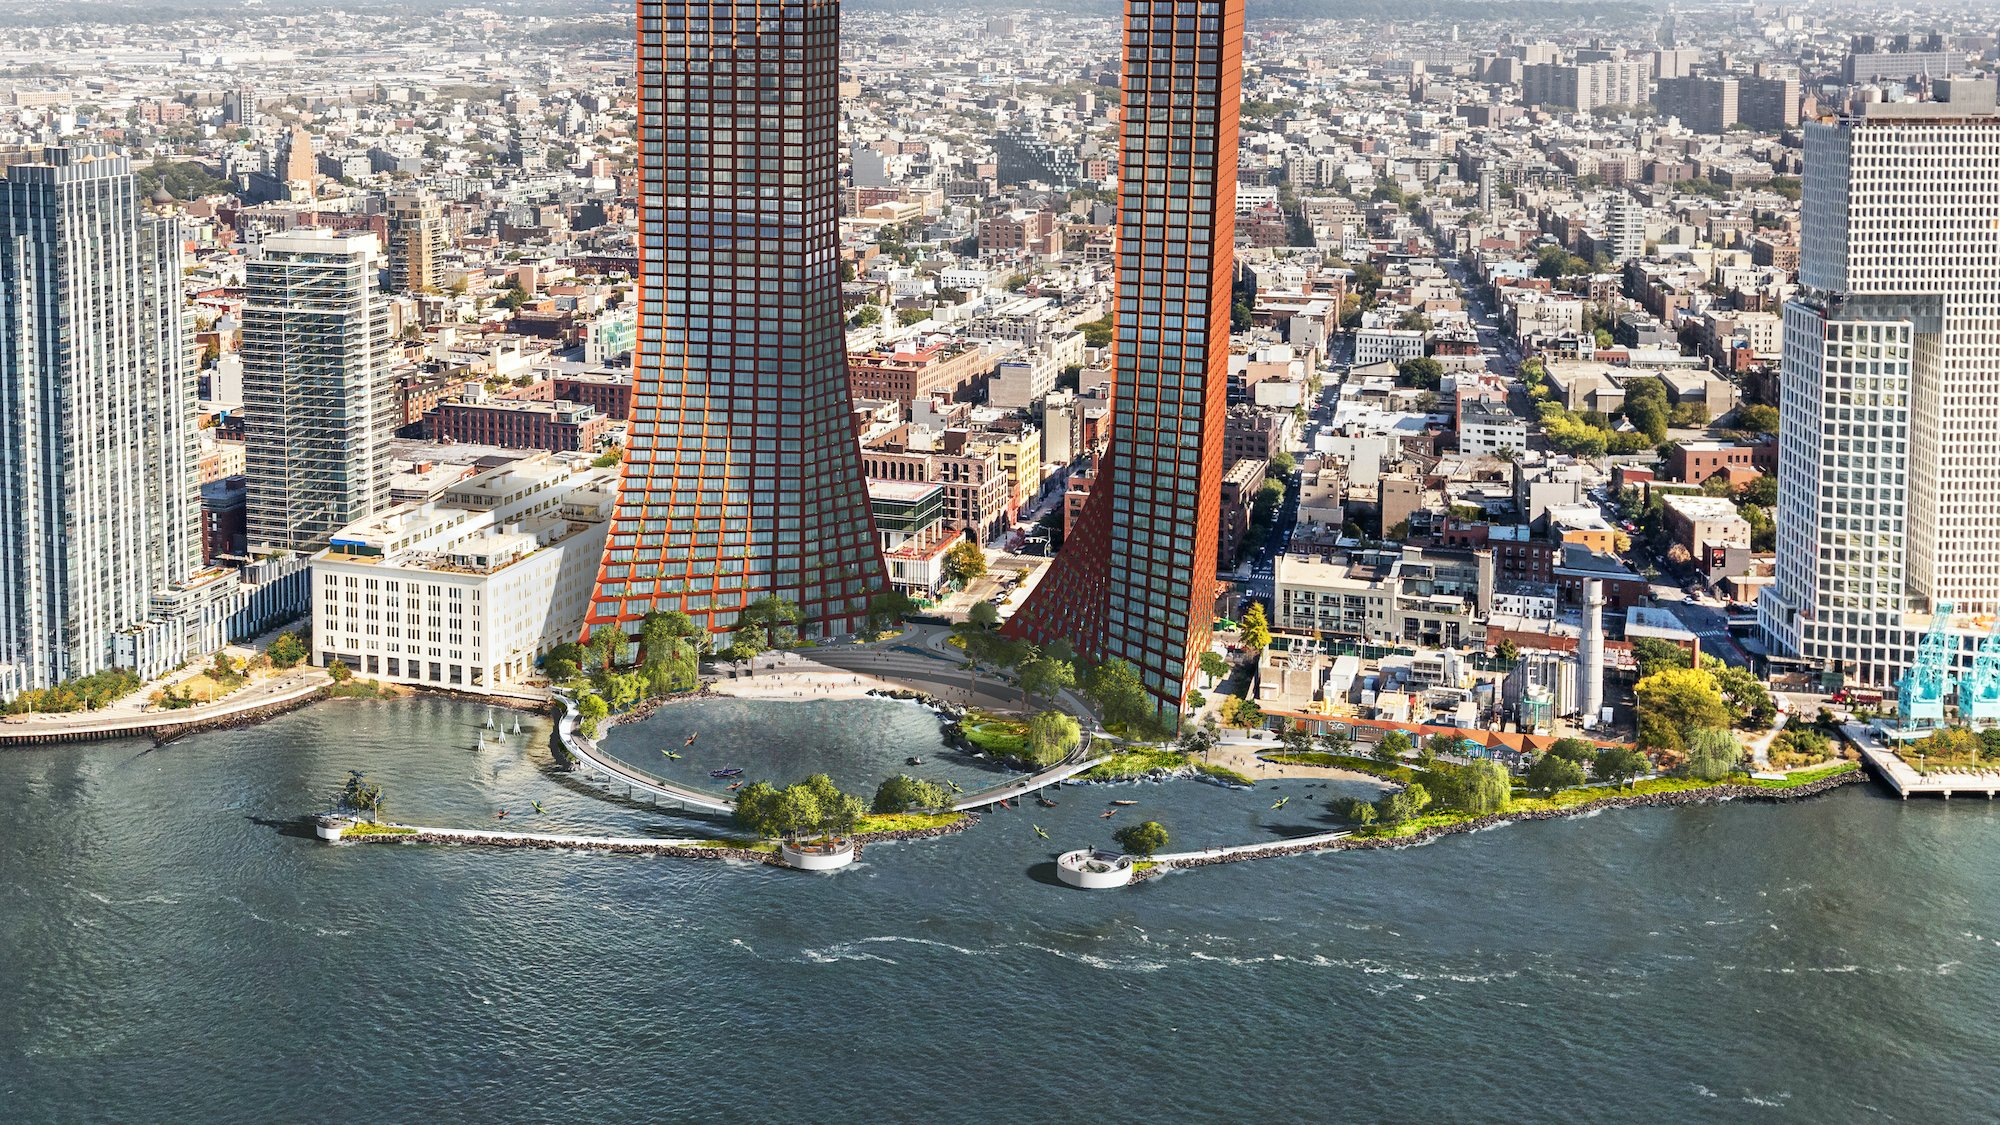 01_RIVER_credit_-%C2%A9-James-Corner-Field-Operations-and-BIG-Bjarke-Ingels-Group-courtesy-of-Two-Trees-Management Massive Bjarke Ingels-designed apartment towers and public beach planned for Williamsburg